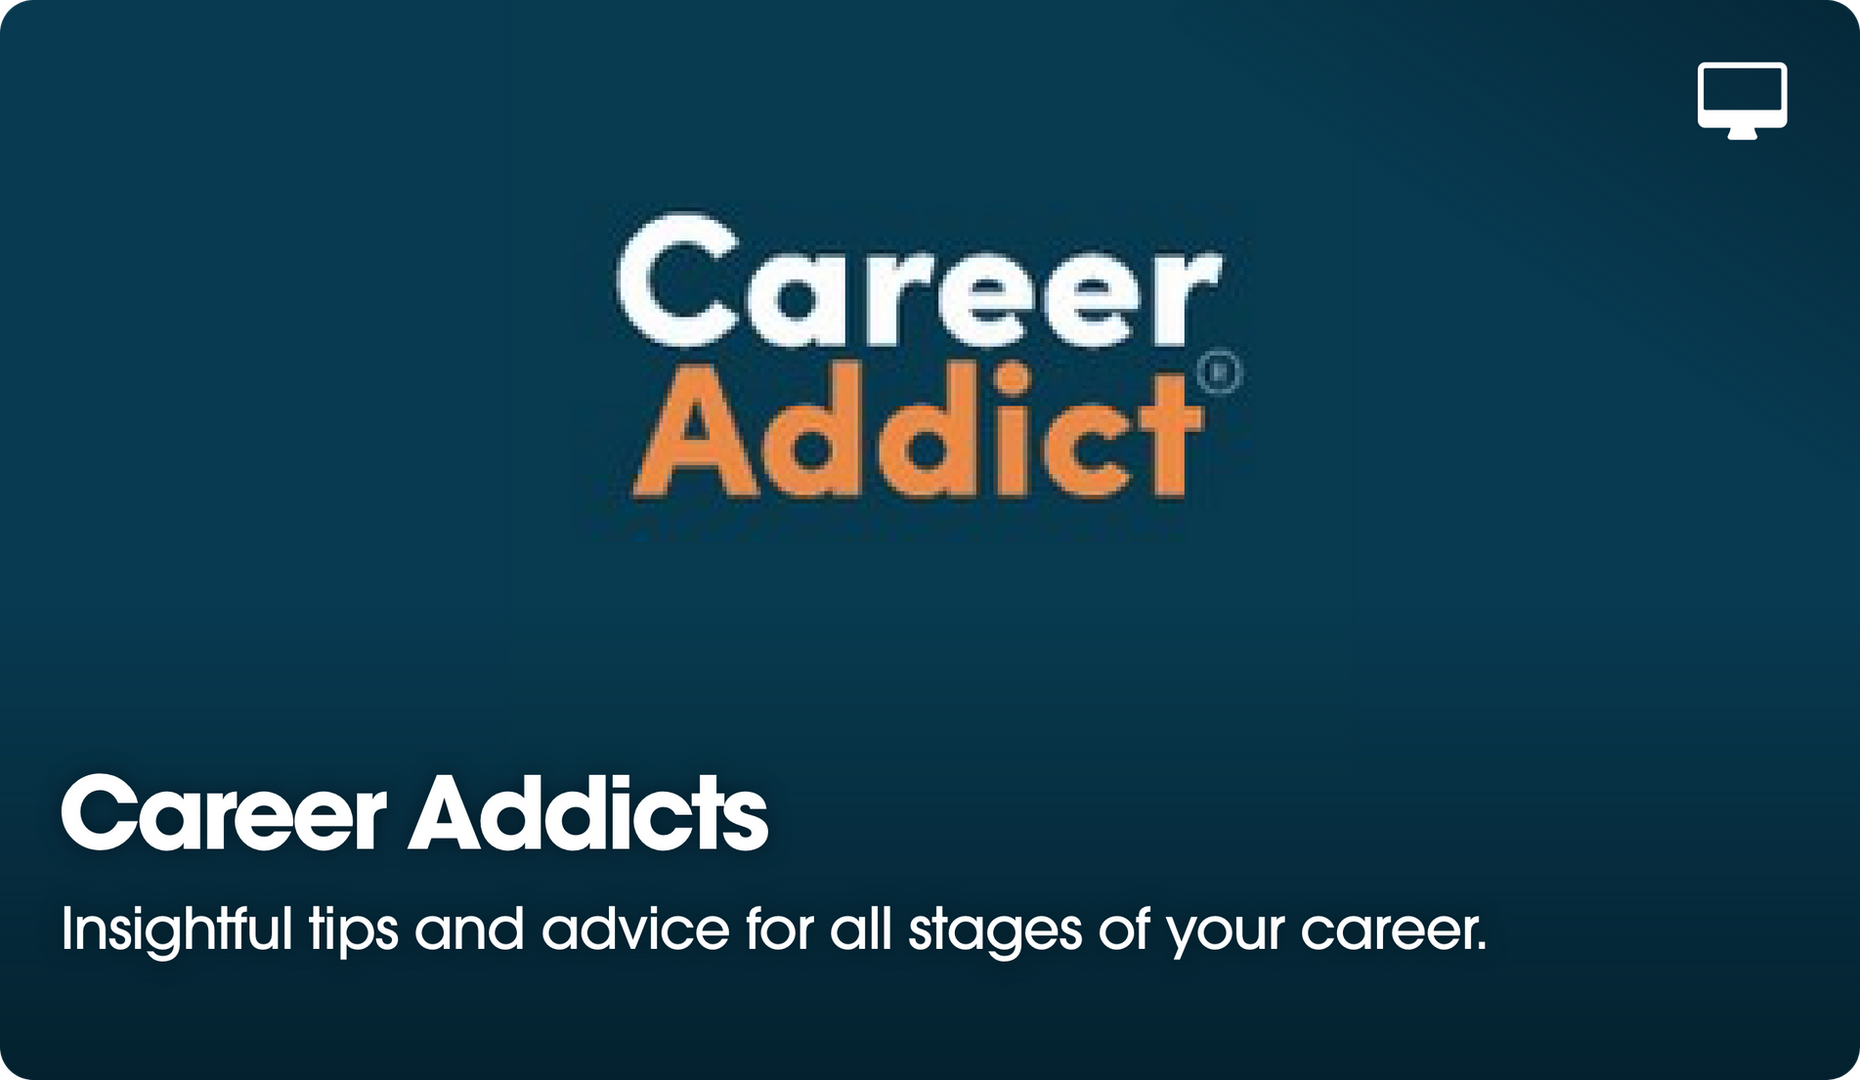 CareerAddicts.png